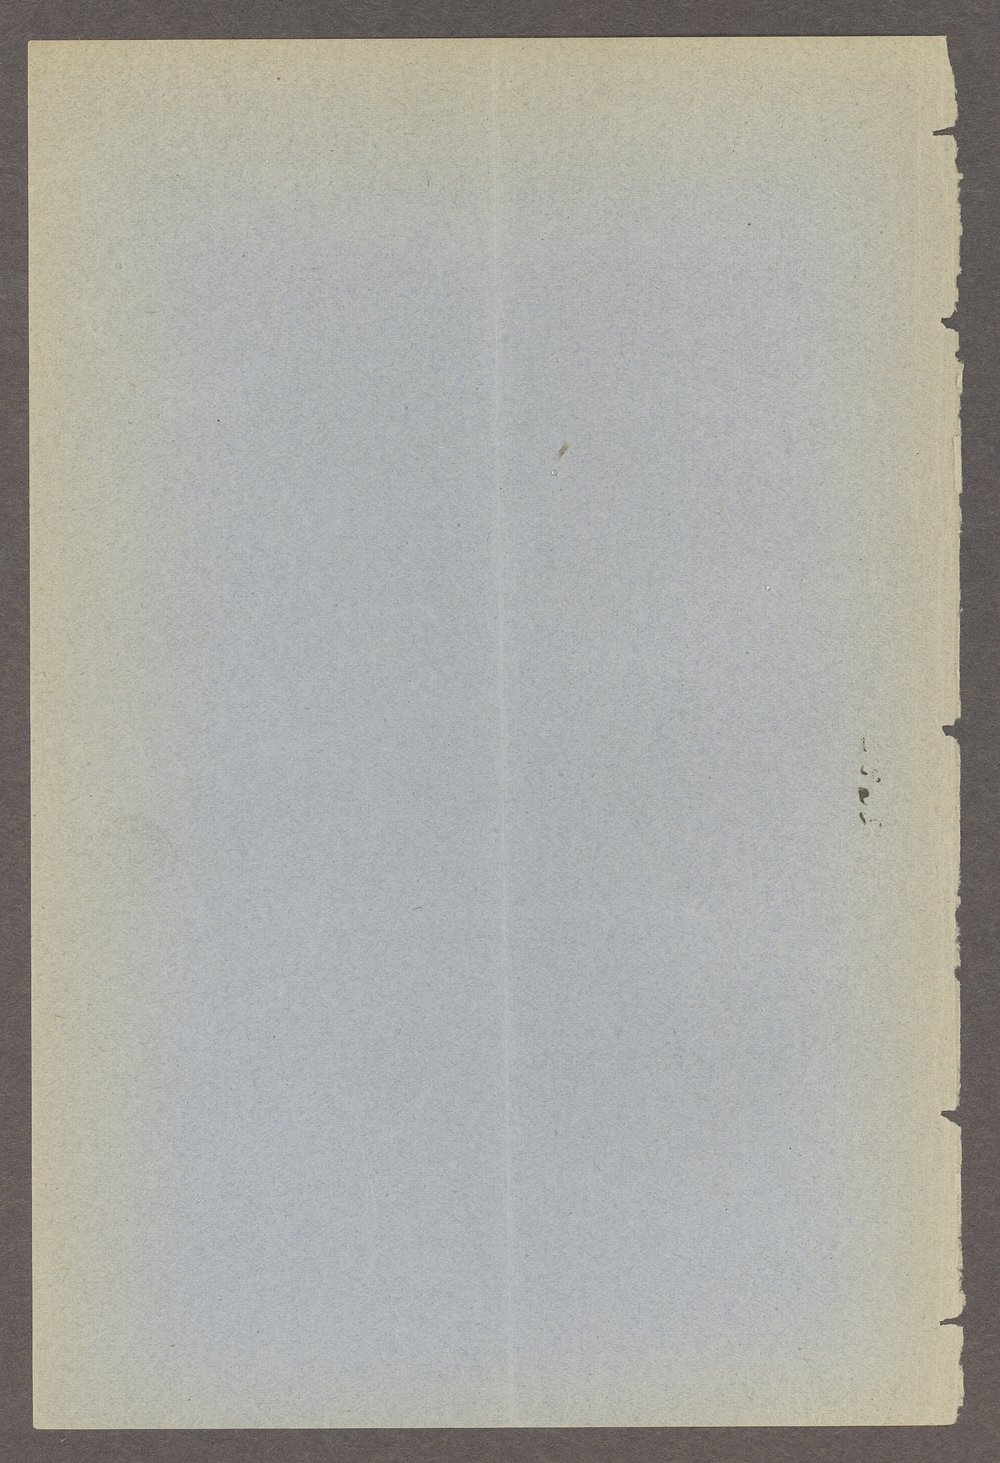 Biennial report of the Boys Industrial School, 1902 - Inside Front Cover